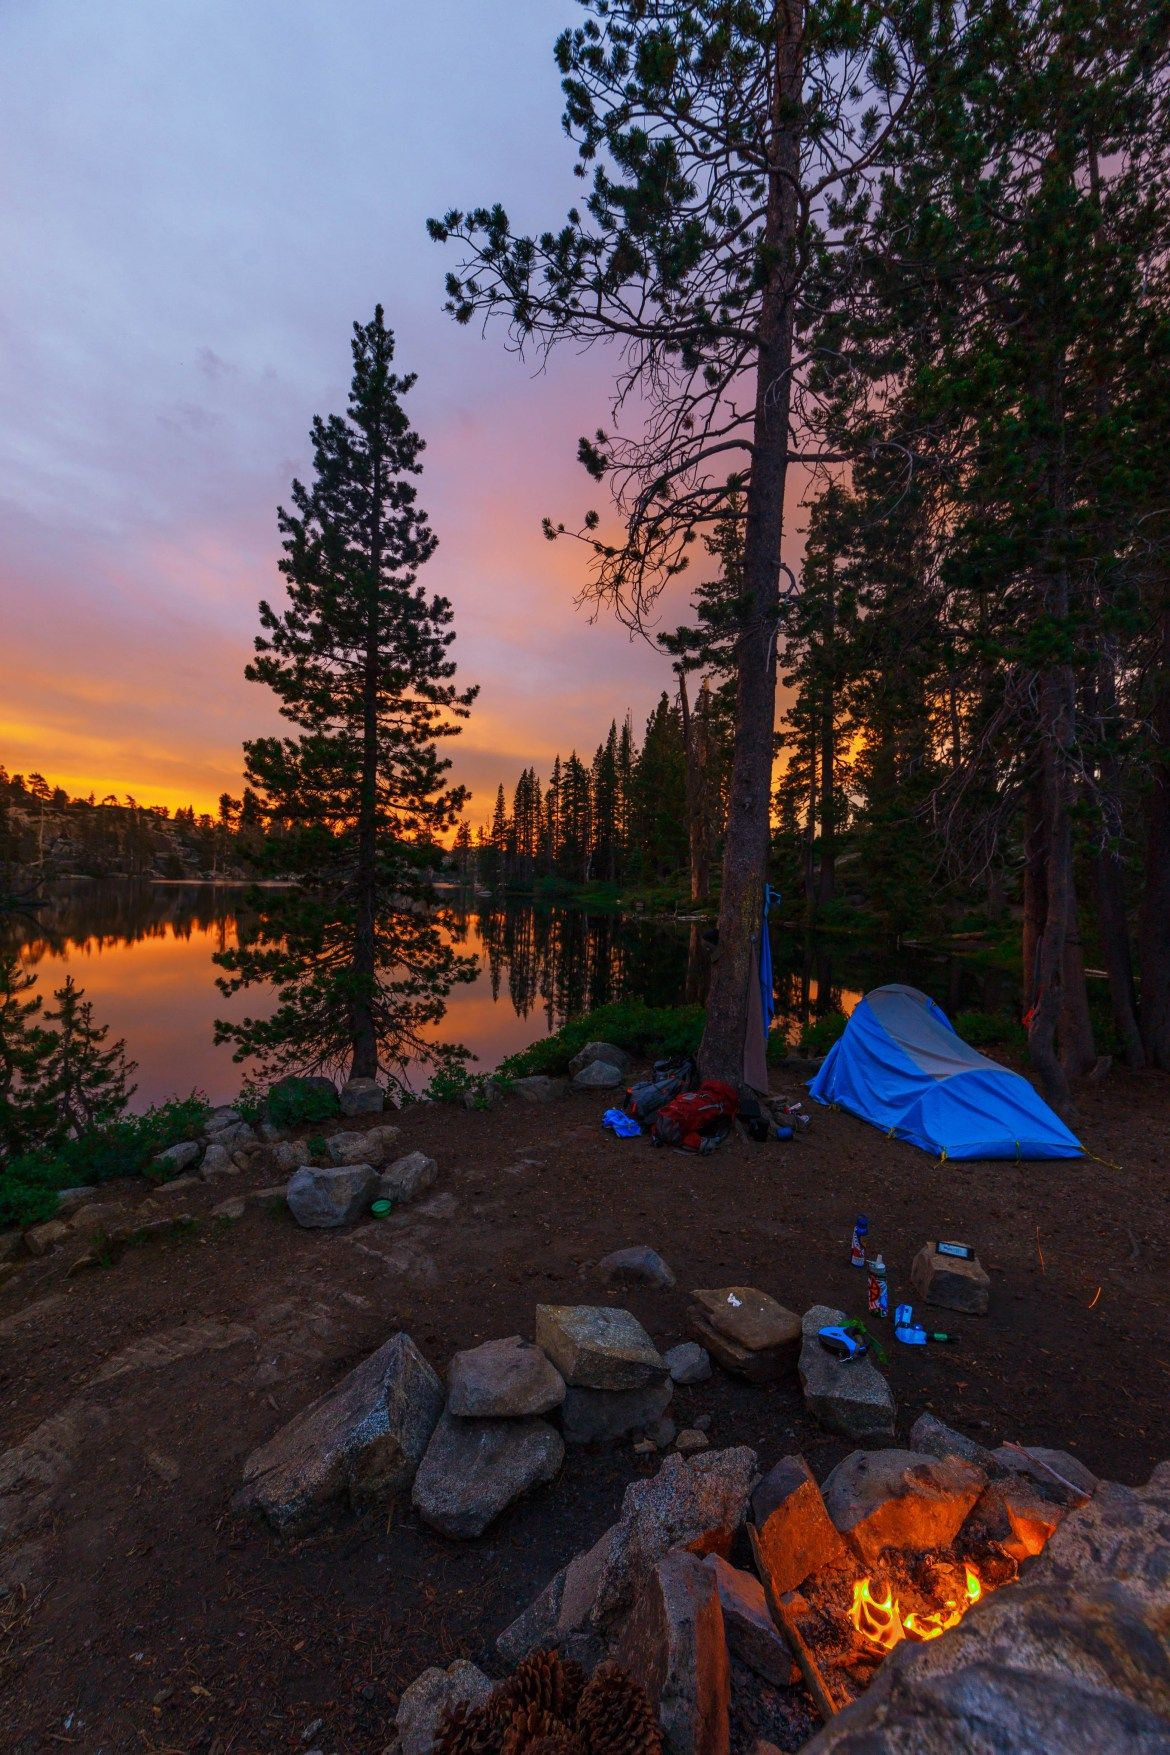 Tahoe's Backpacking and Photography Secret: Loch LevenDuring a Tahoe summer, nothing is better than a campsite by a lake, with sunset campfires and plenty of rocks for epic swan-diving.